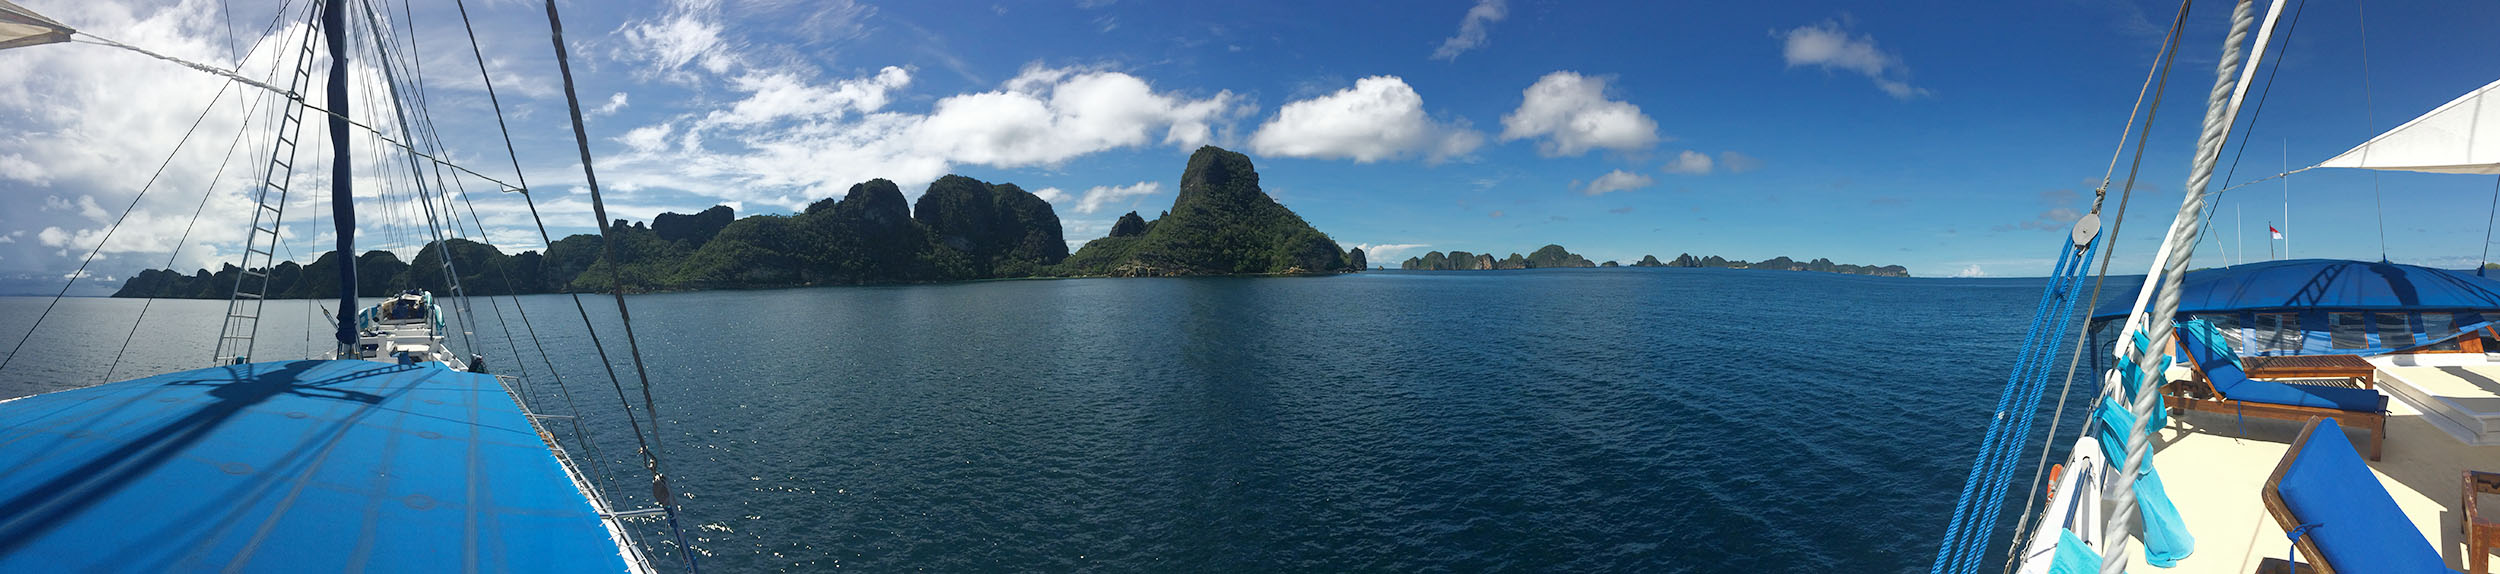 Raja Ampat with the Siren Fleet liveaboard and Atmosphere Resort